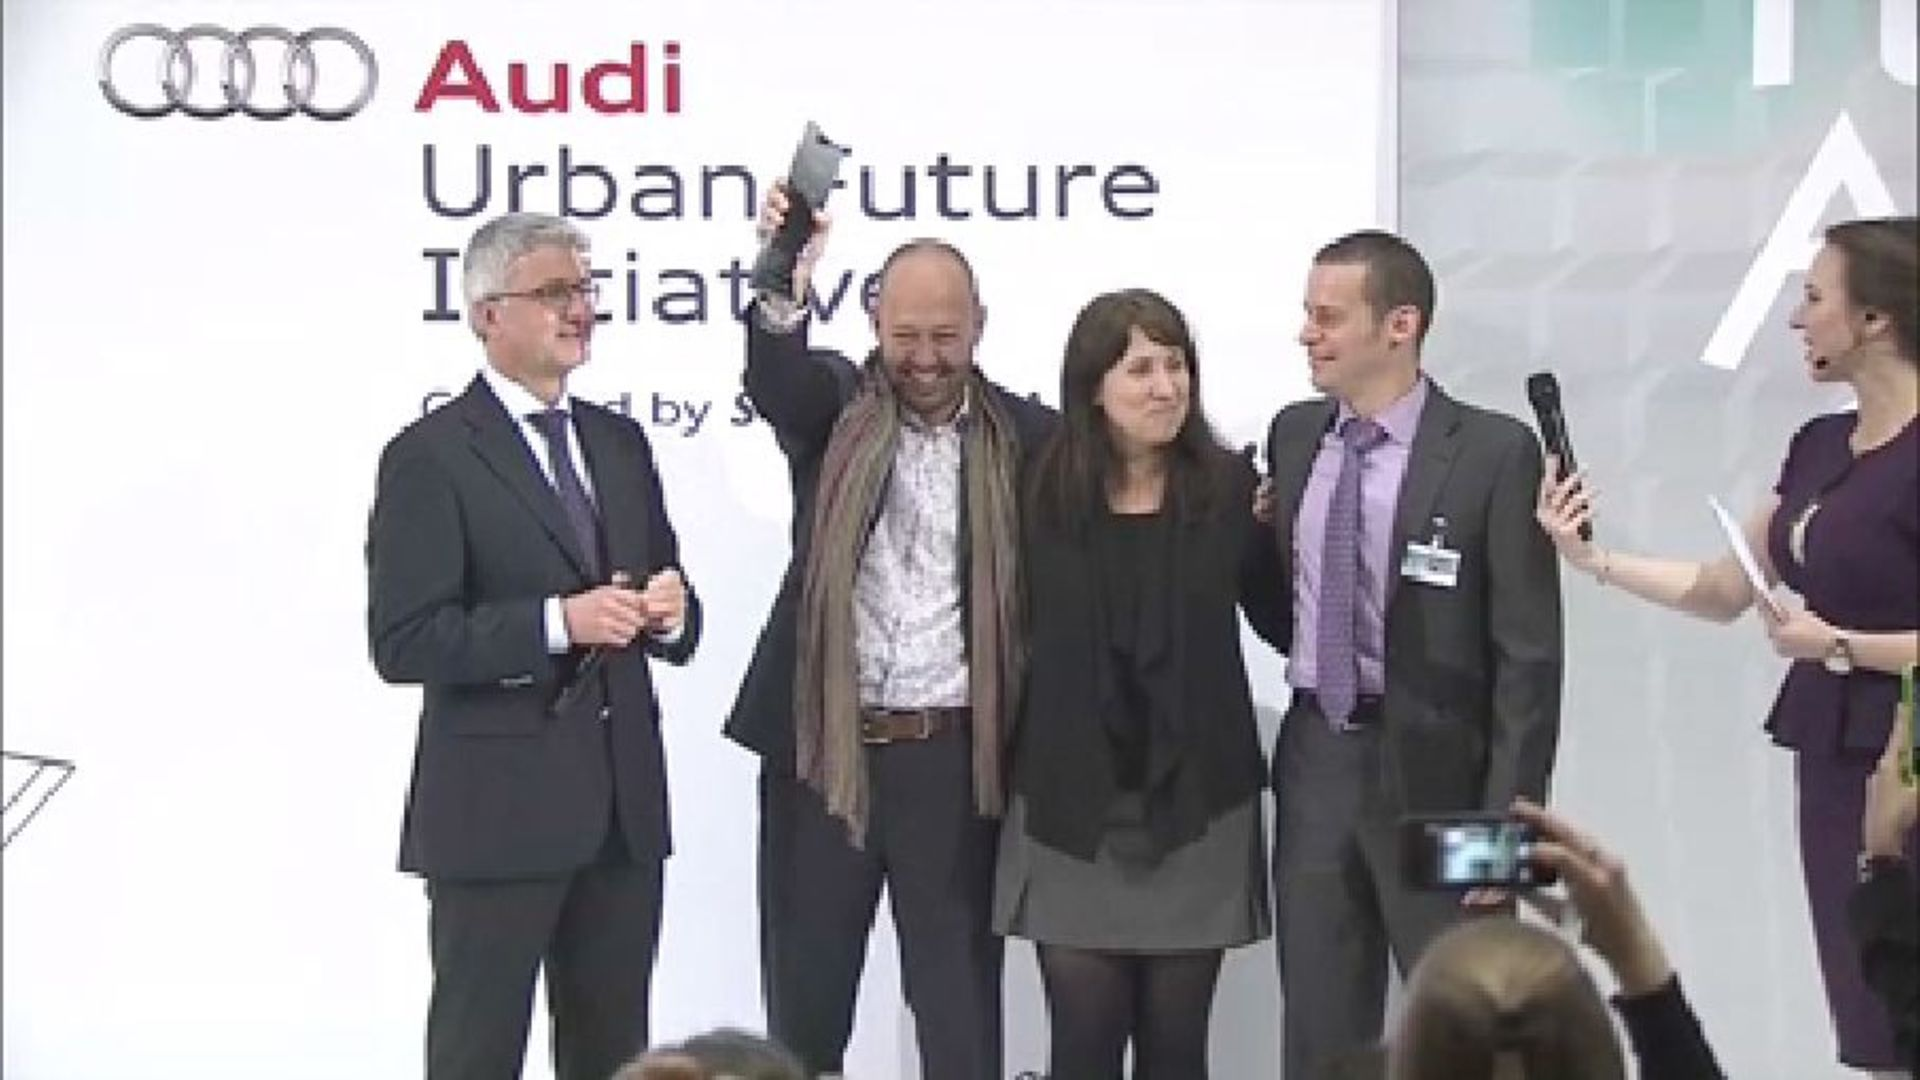 Audi Urban Future Award - The Award Ceremony